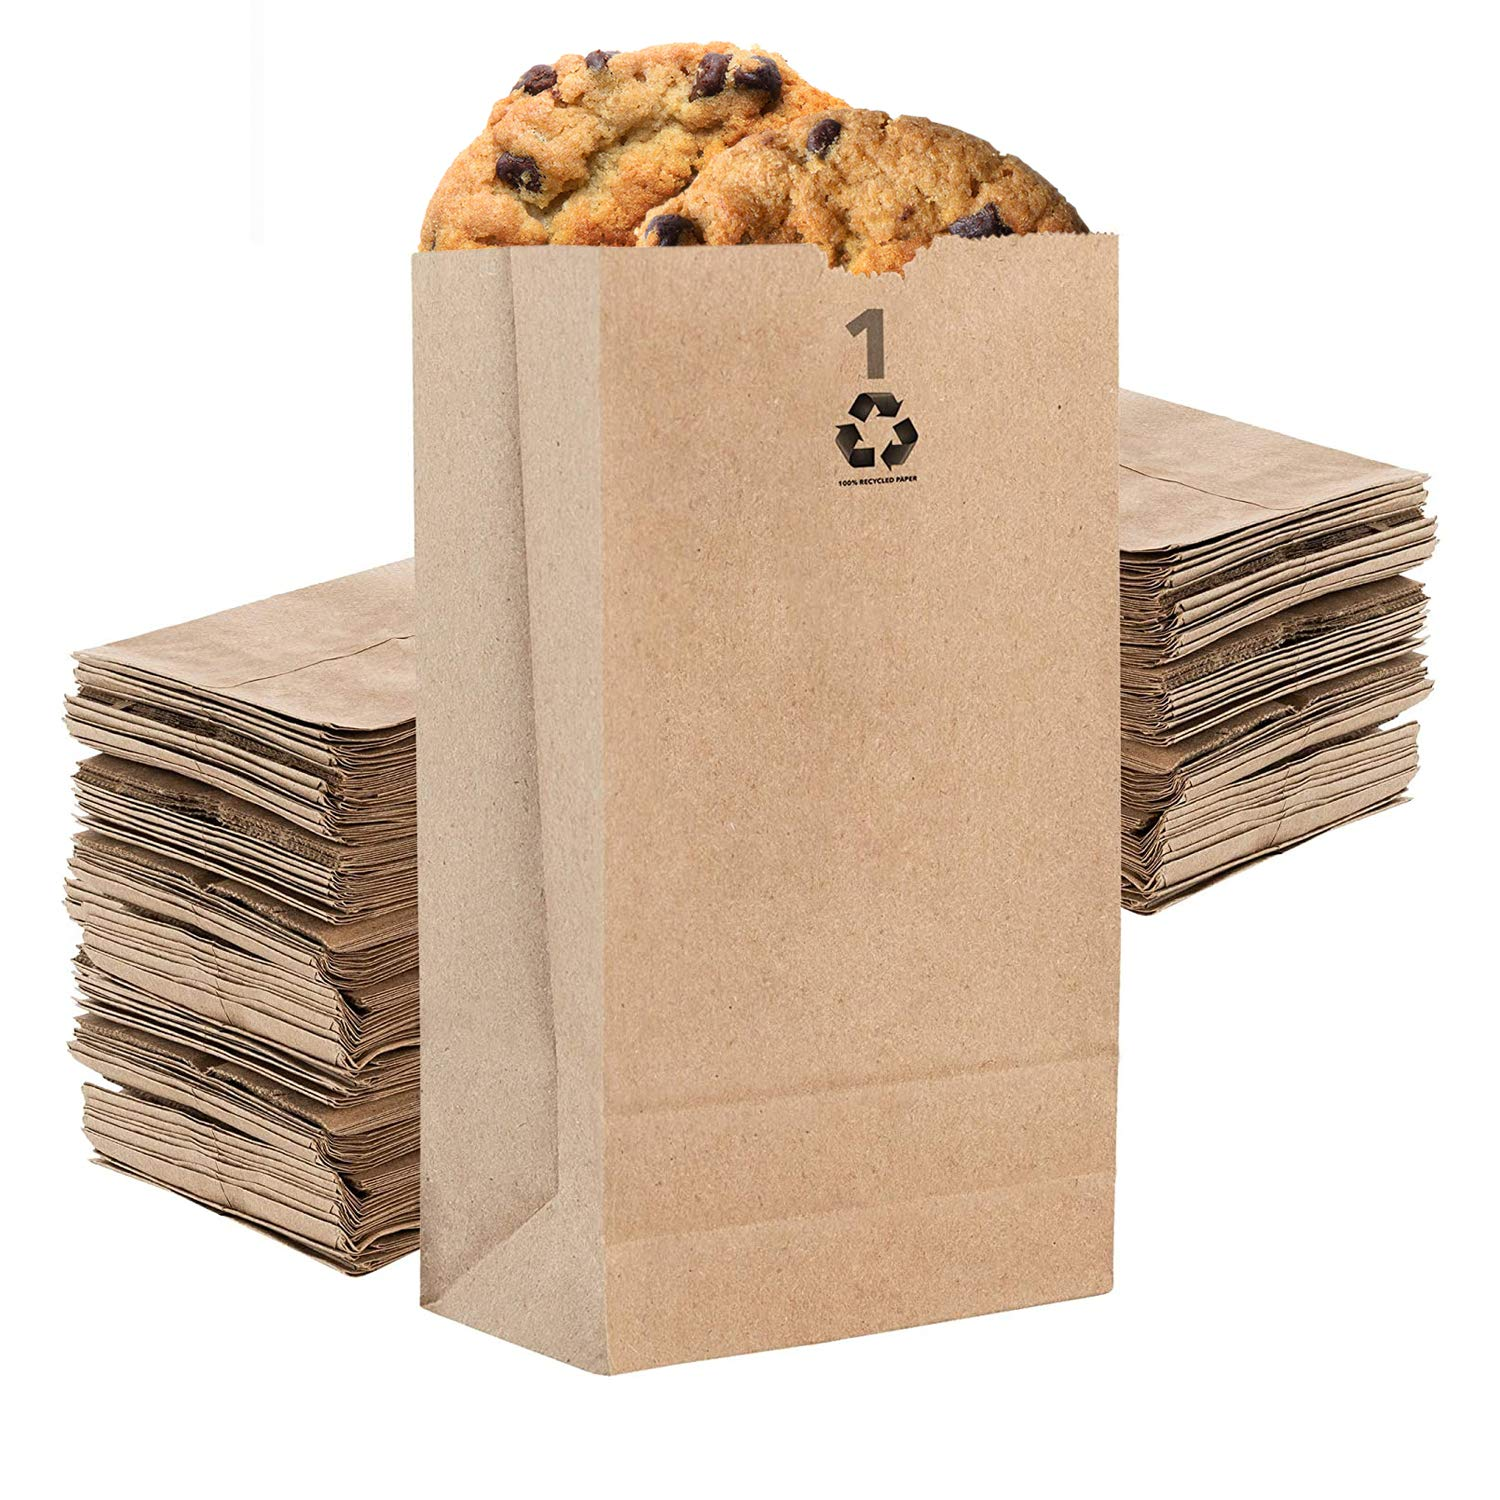 Stock Your Home 1 Lb Kraft Brown Paper Lunch Bags (250 Count) - Mini Paper Bags for Packing Lunch - Blank Kraft Brown Paper Sacks for Arts & Crafts Projects